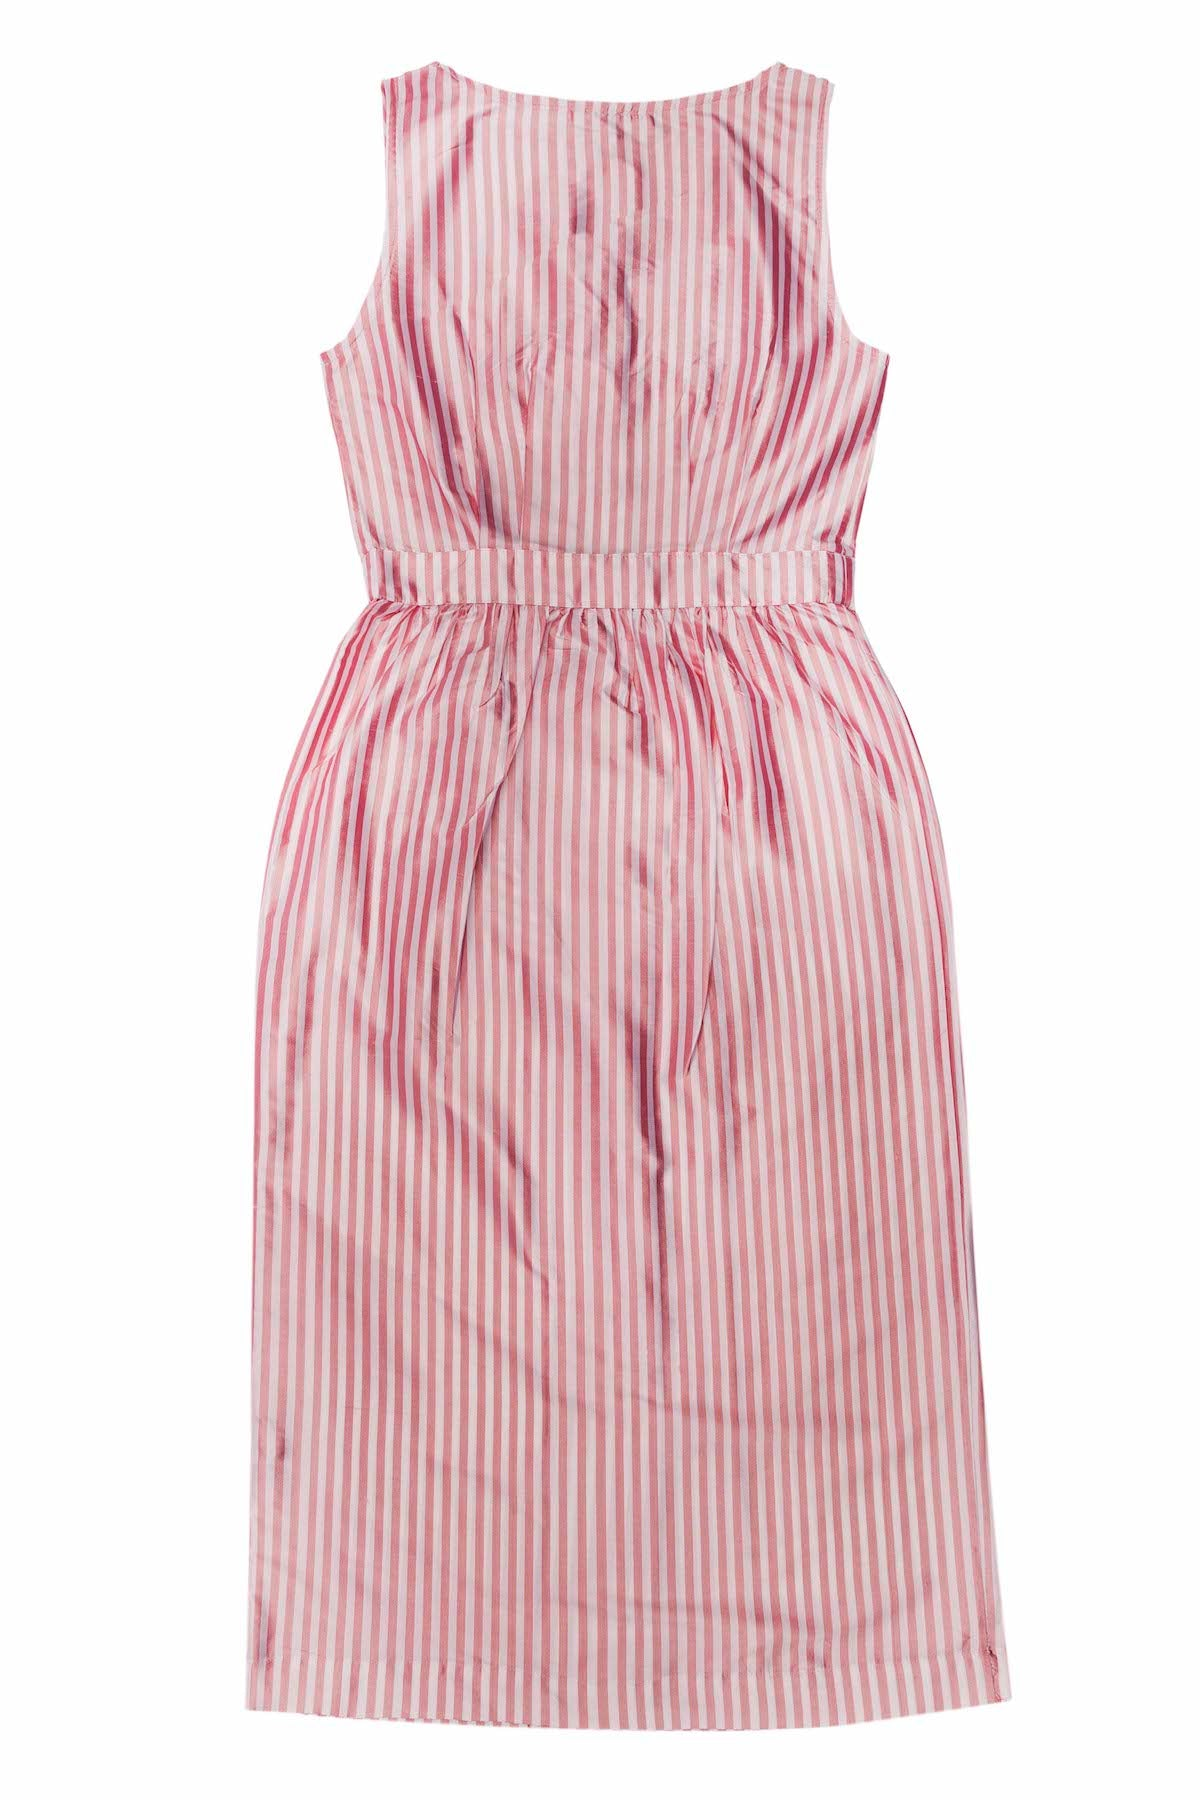 SILK STRIPE AUDREY DRESS